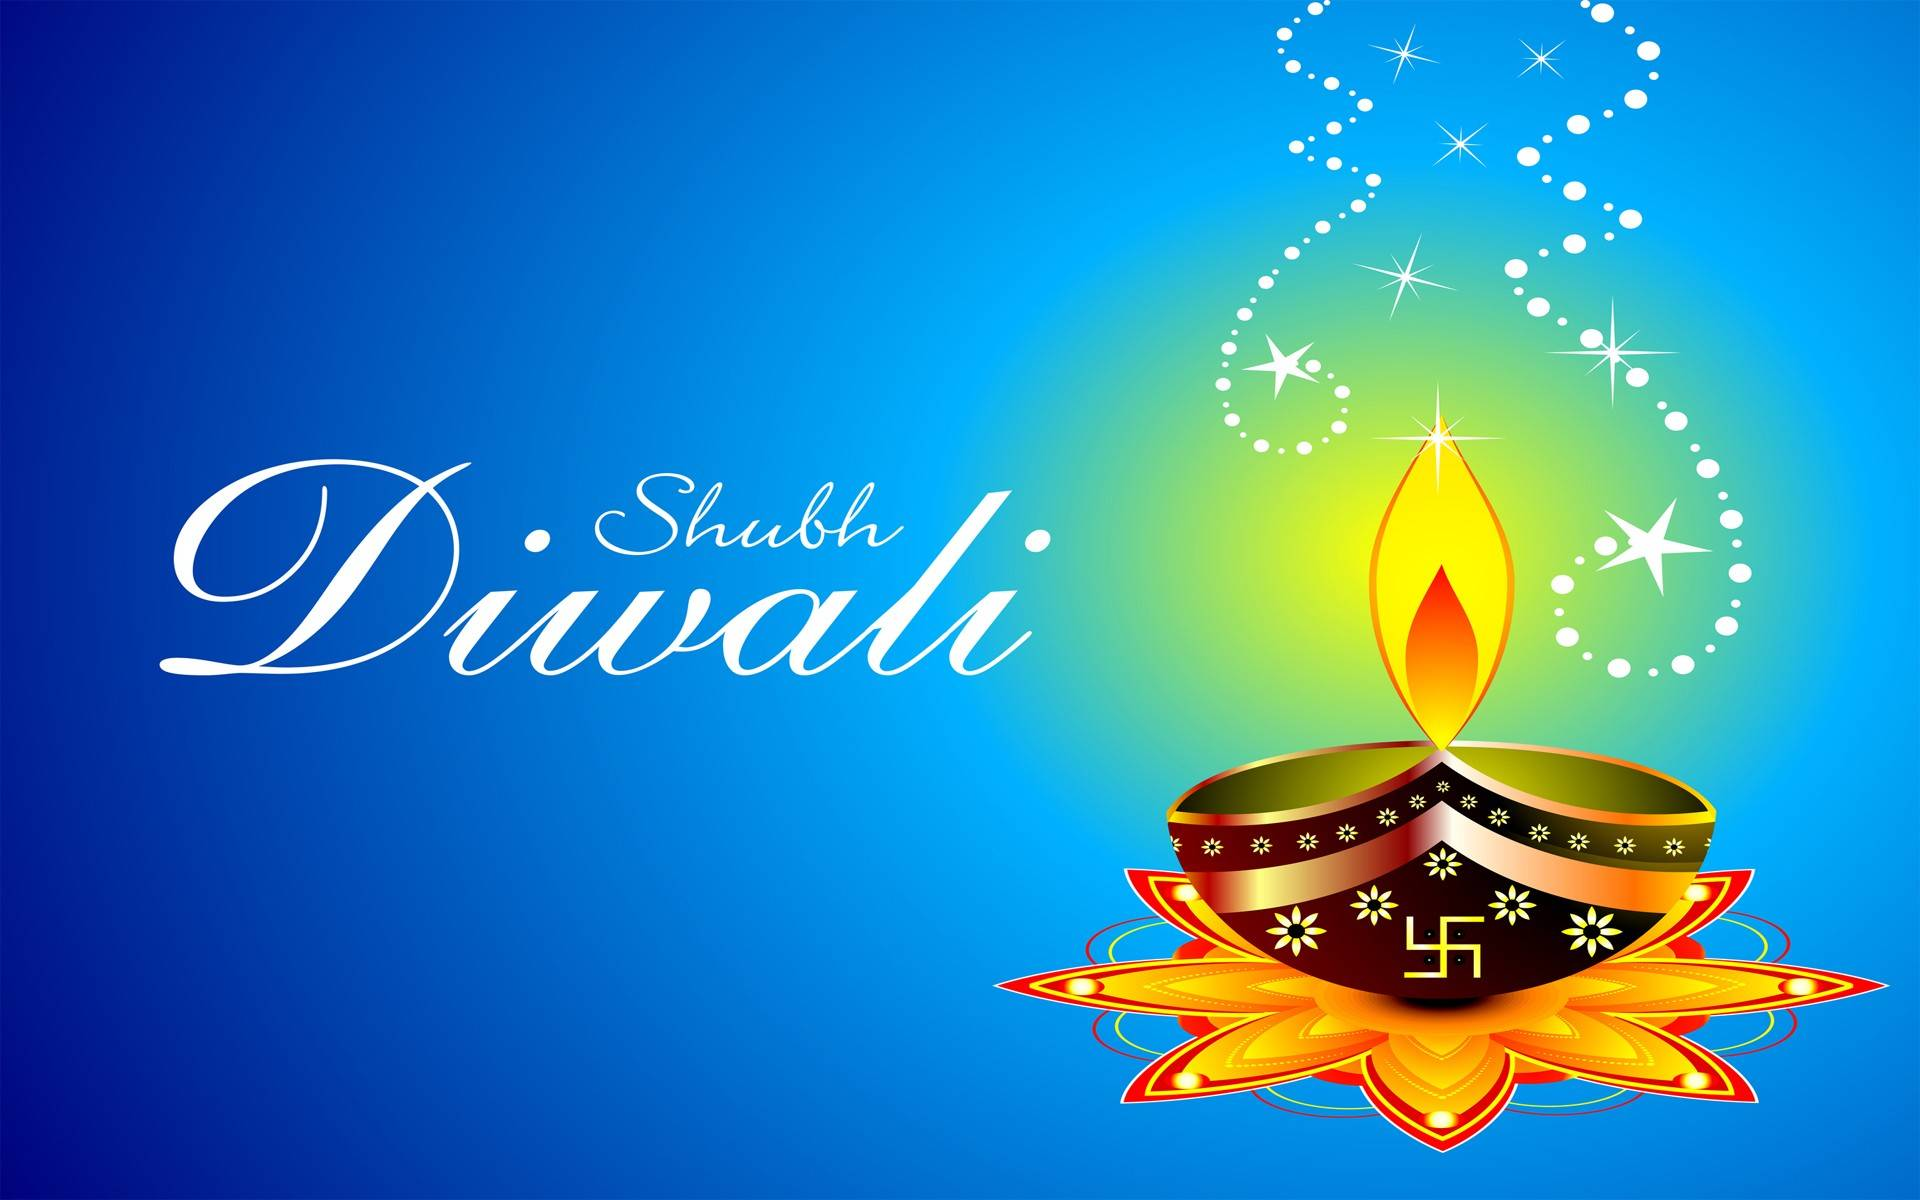 Happy diwali images 2018 quotes wishes greetings hd messages sms diwali 2018 pictures for desktop and pc diwali greetings m4hsunfo